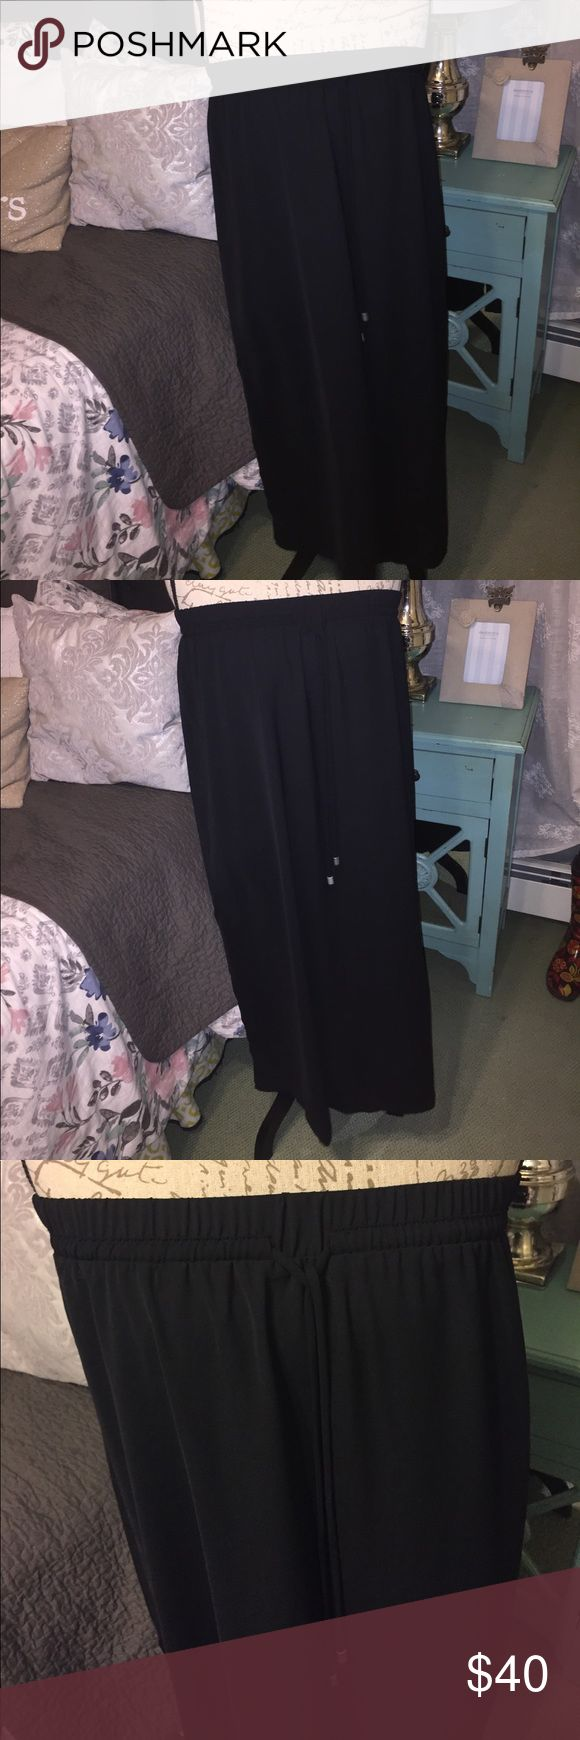 Black Maxi skirt New without tags! Beautiful long black maxi skirt with flattering thick elastic waist band and long drawstring detail. Beautiful dressier fabric that can absolute dressed up or dressed down. Also has two slits to slightly below the knee on each side of the skirt for added comfort and flowiness to the skirt ❤️ Women's Size XXL or 2X . From a smoke free and pet free home fourteenth place Skirts Maxi